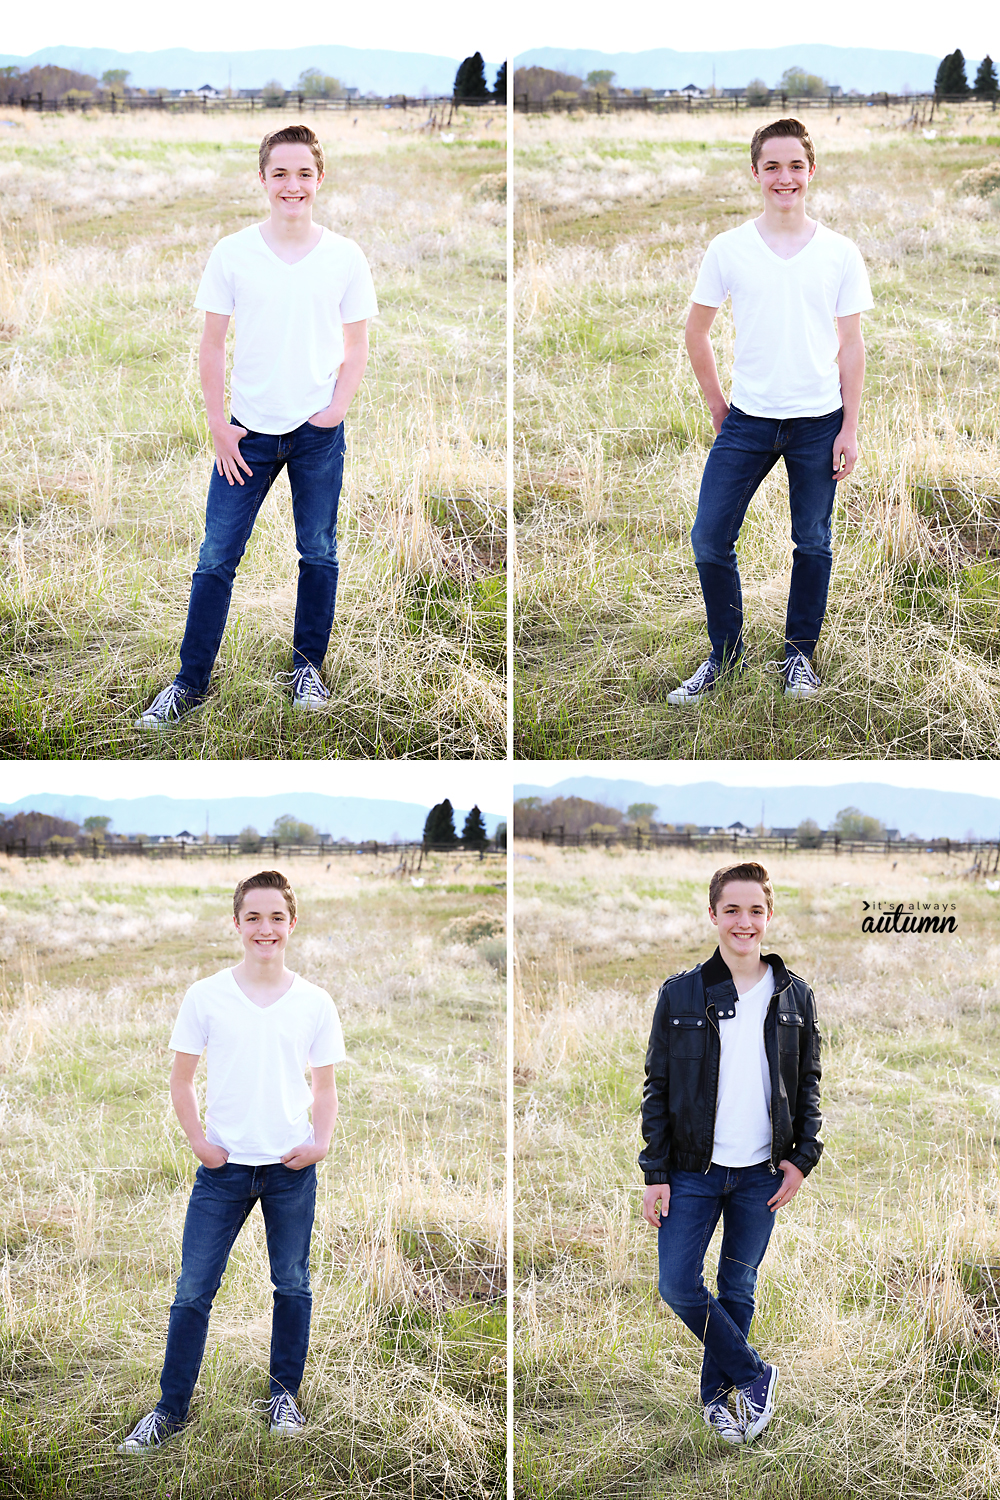 10 go-to photo poses for boys. How to pose boys. Beginning photography tips.